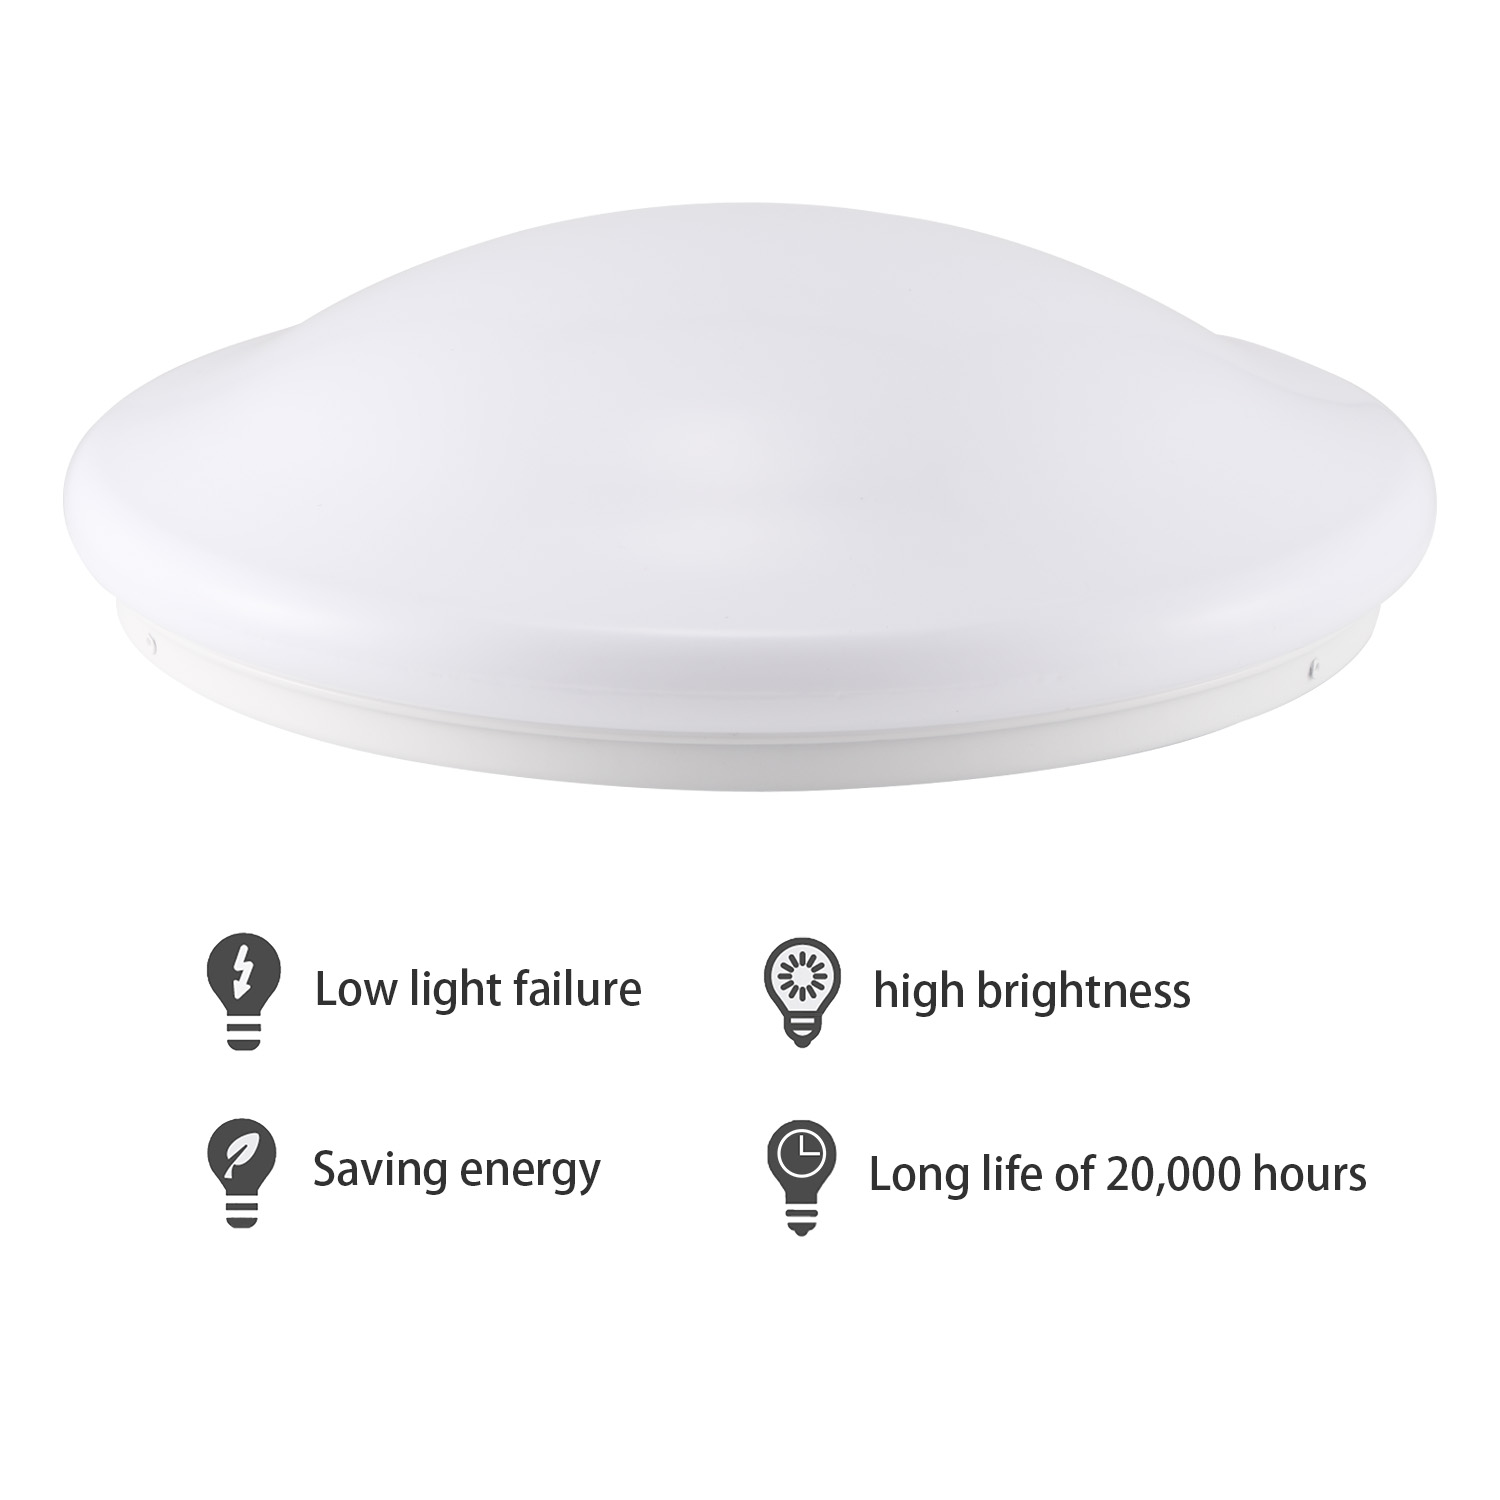 7000k Bright Light 18w Led Ceiling Light Round Flush Mount: 6W 12W 18W 24W Super Bright Round Surface LED Panel Wall